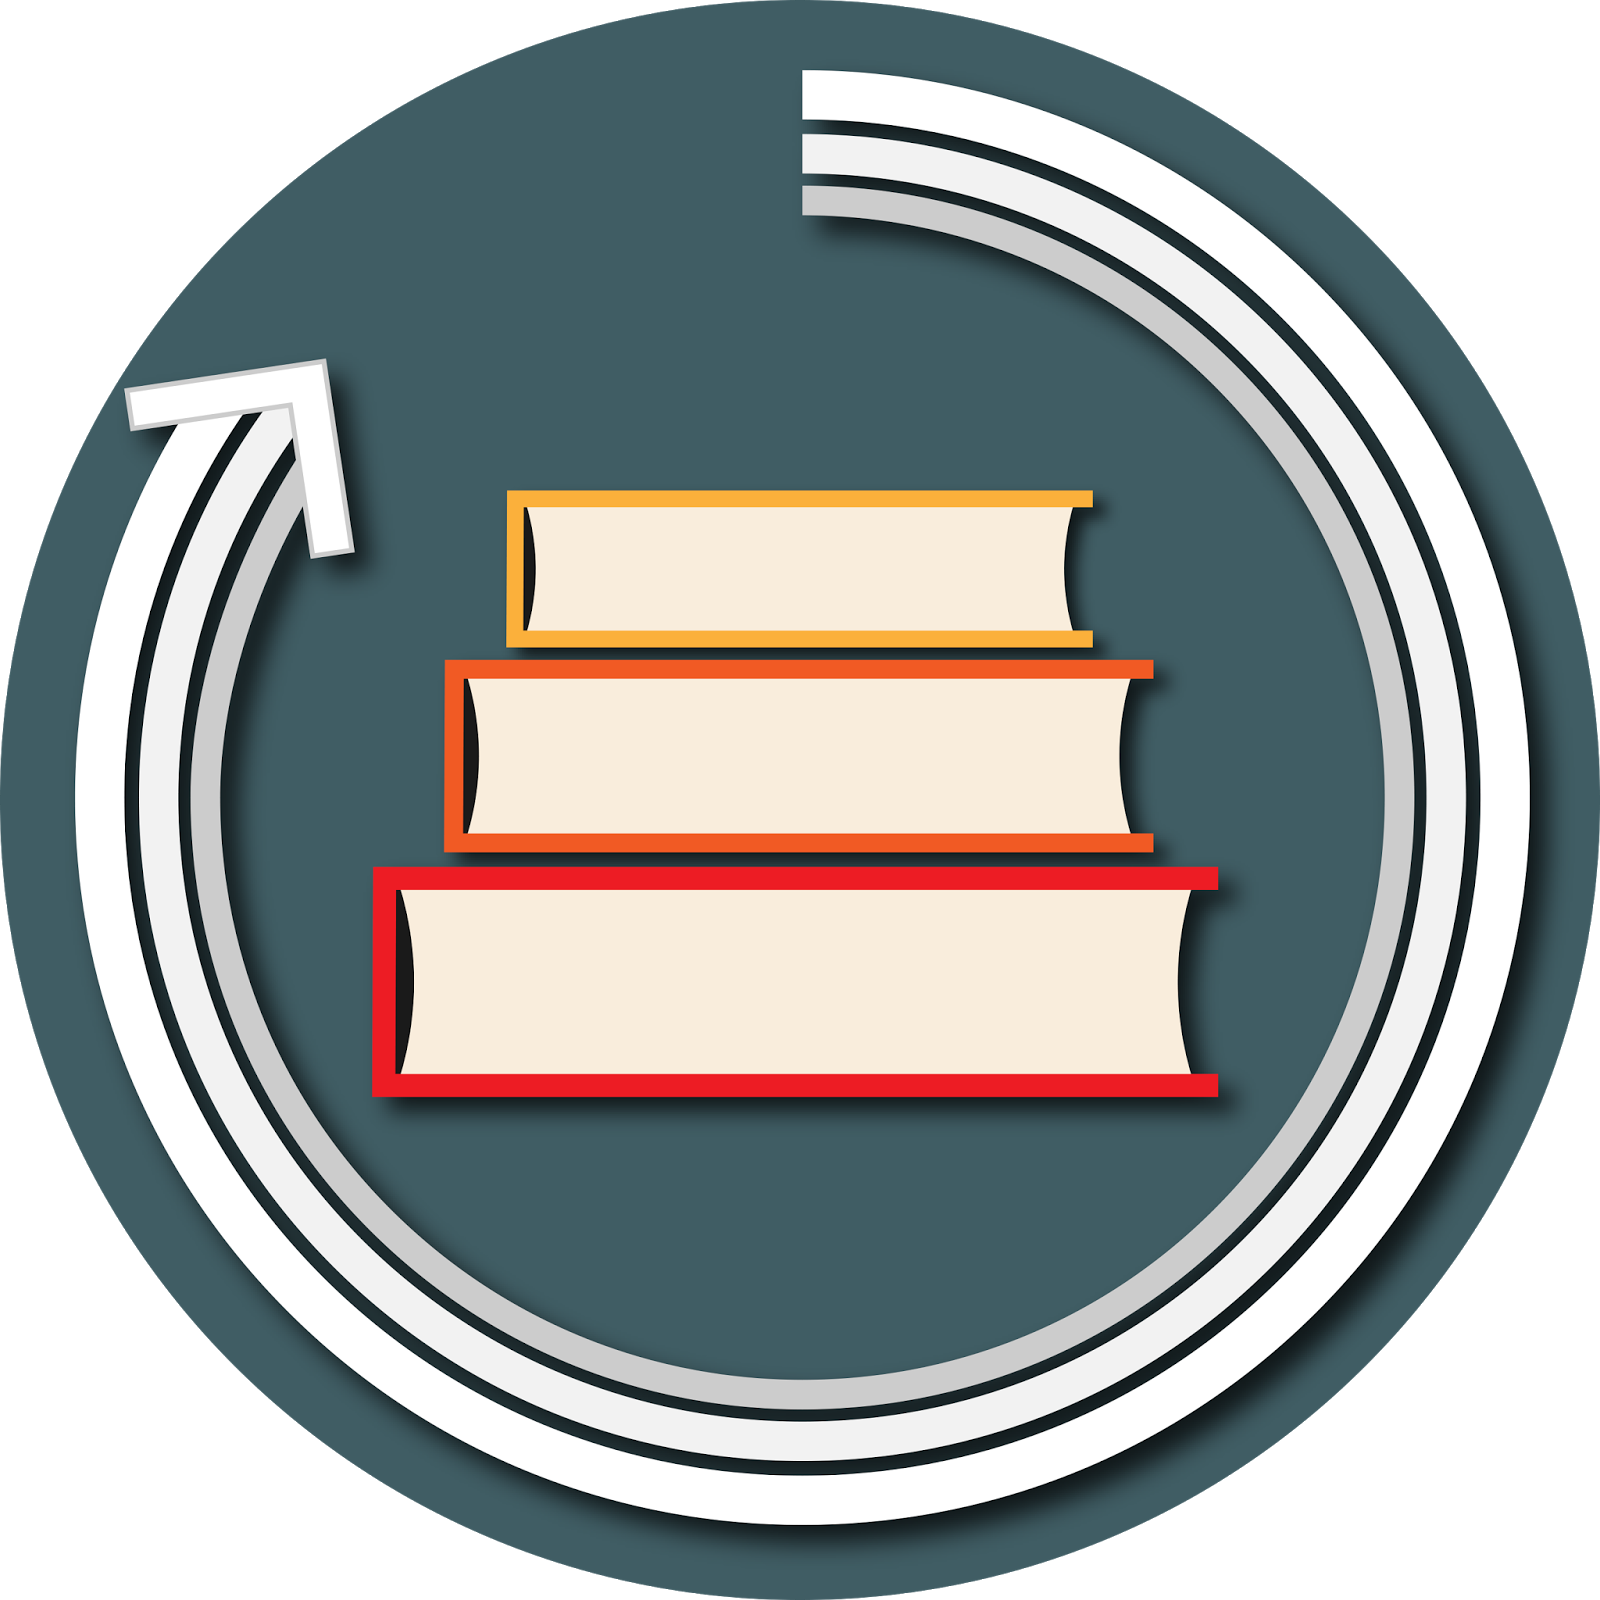 Library book return clipart clip freeuse download Introducing auto-renewal of loans ~ Library News clip freeuse download